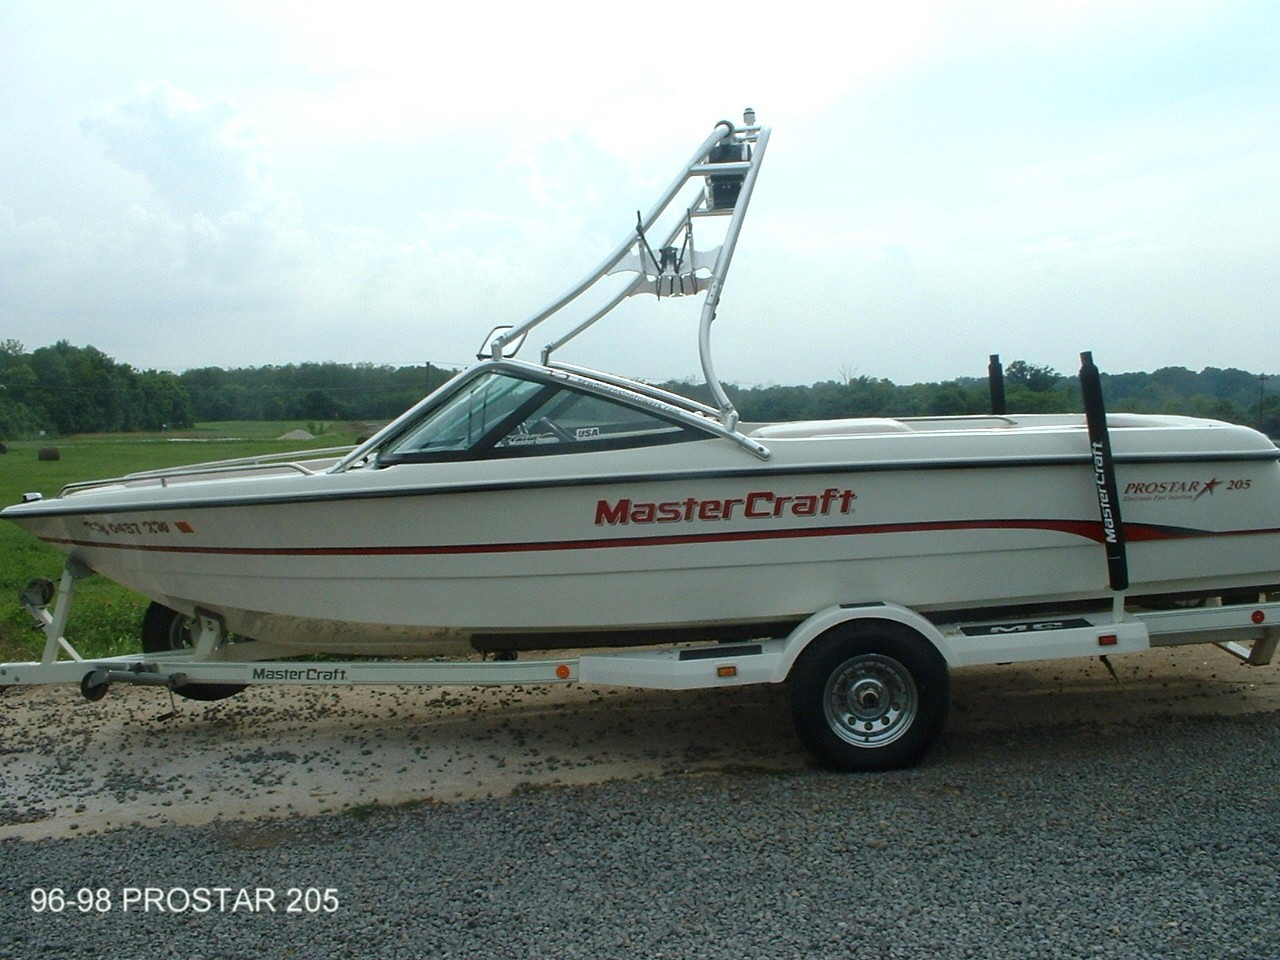 main view for 96 - 98 mastercraft prostar 205 with new dimension tower